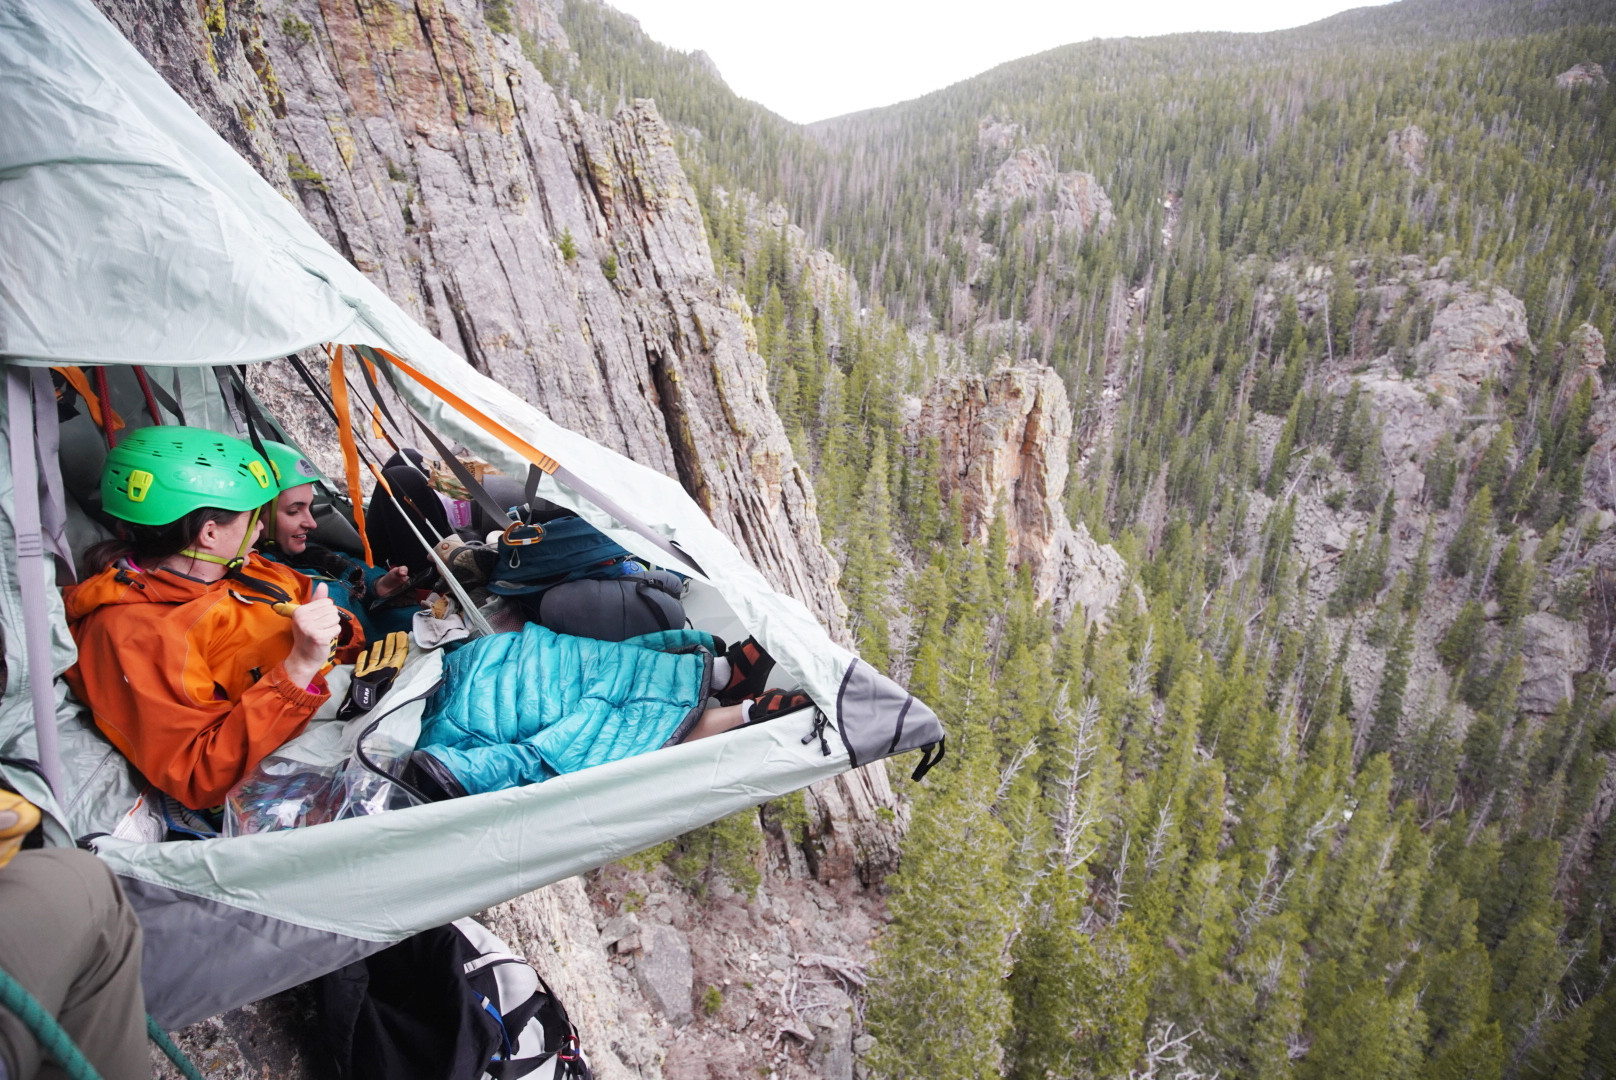 Cliff camping in Colorado Airbnb Adventures